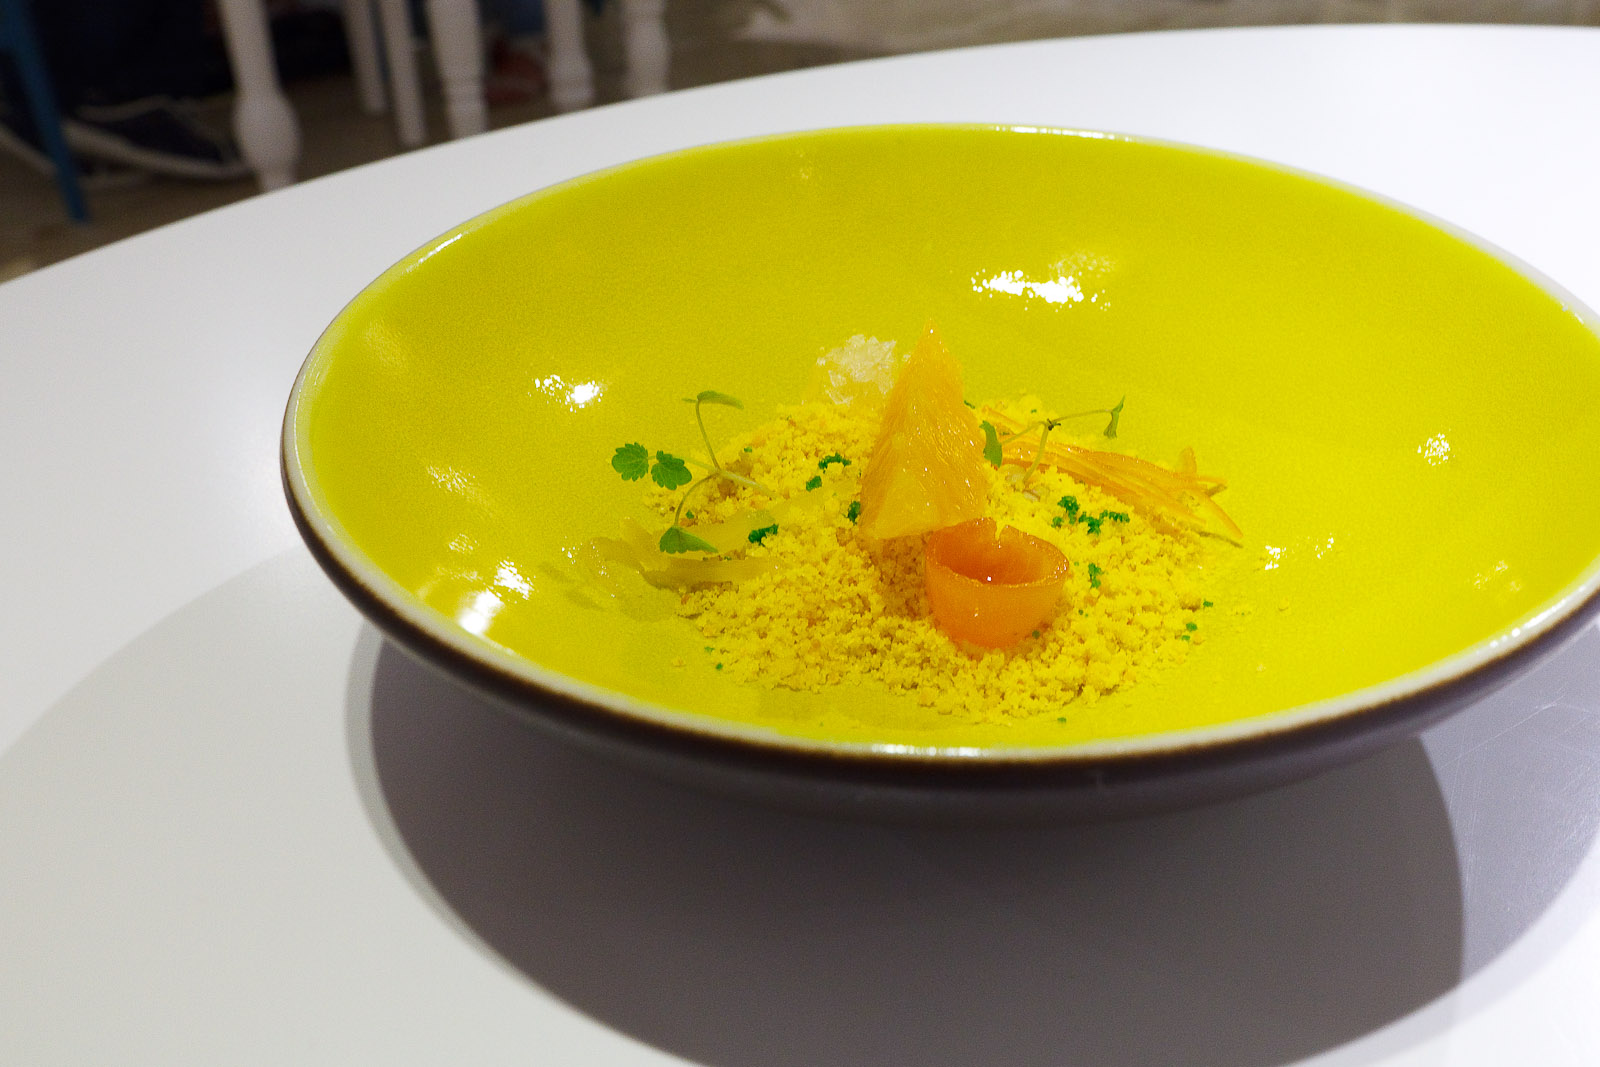 11th Course: Field of citrus fruits